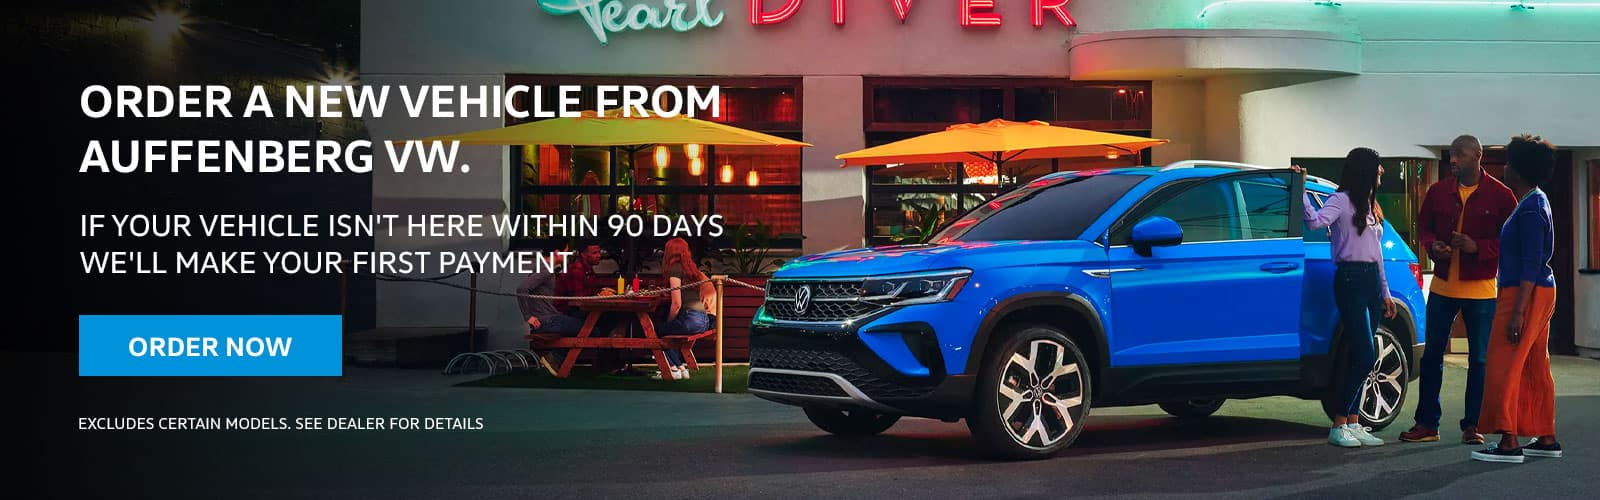 ORDER A NEW vehicle FROM AUFFENBERG VW . IF YOUR VEHICLE ISN'T HERE WITHIN 90 DAYS WE'LL MAKE YOUR FIRST PAYMENT Disclaimer:EXCLUDES certain models. See dealer for details